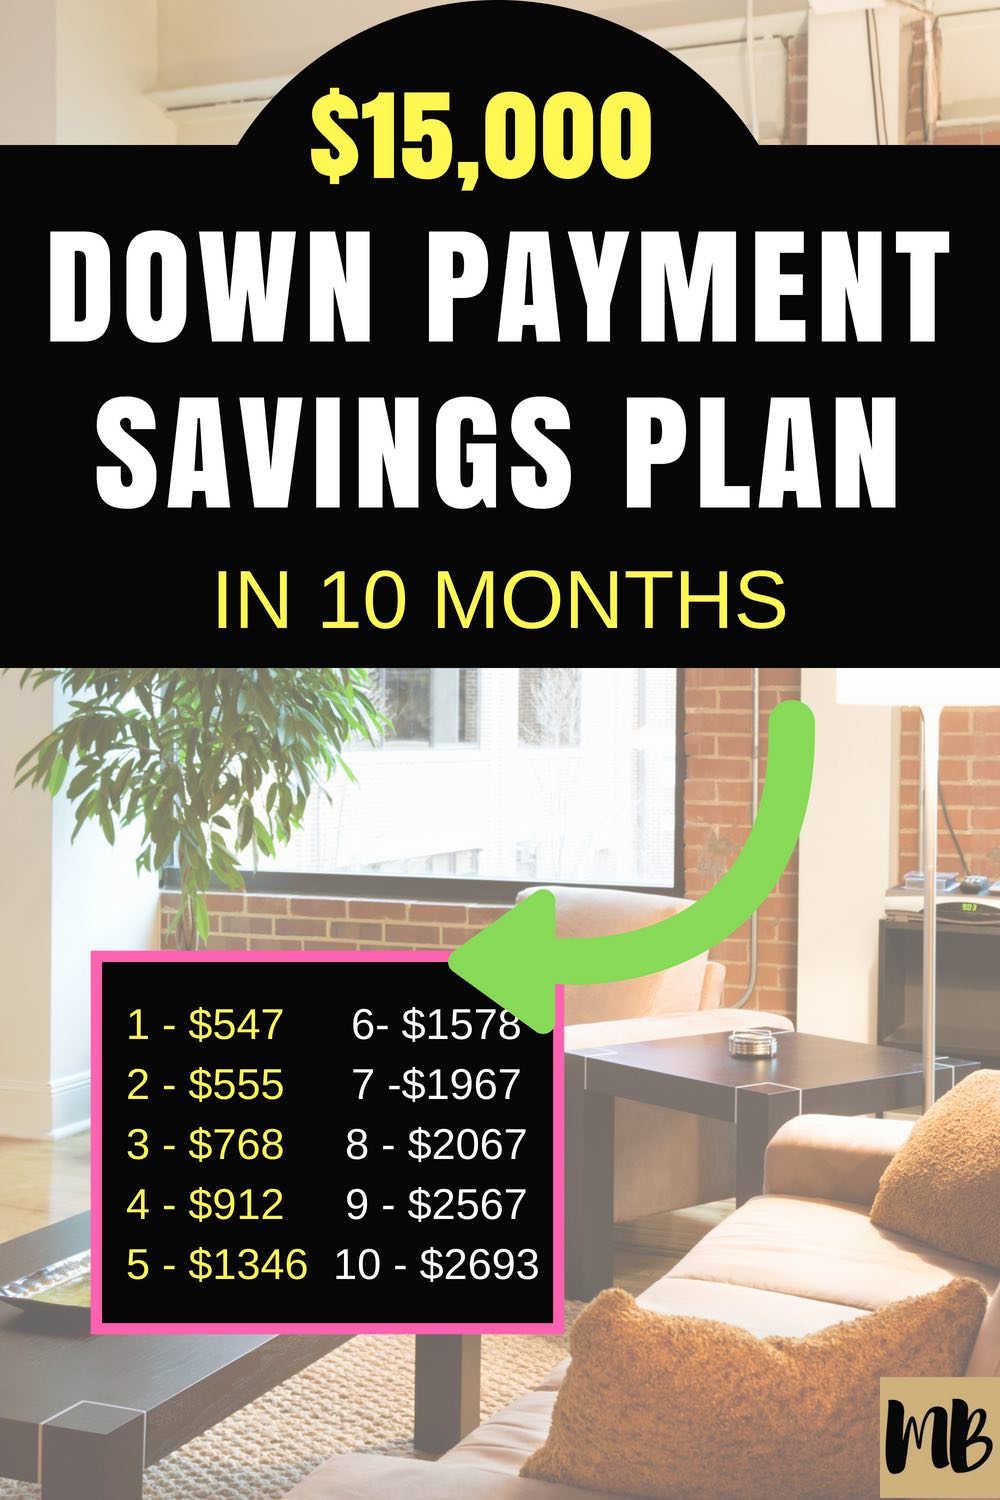 I can do this now that I have a down payment savings plan! So excited!